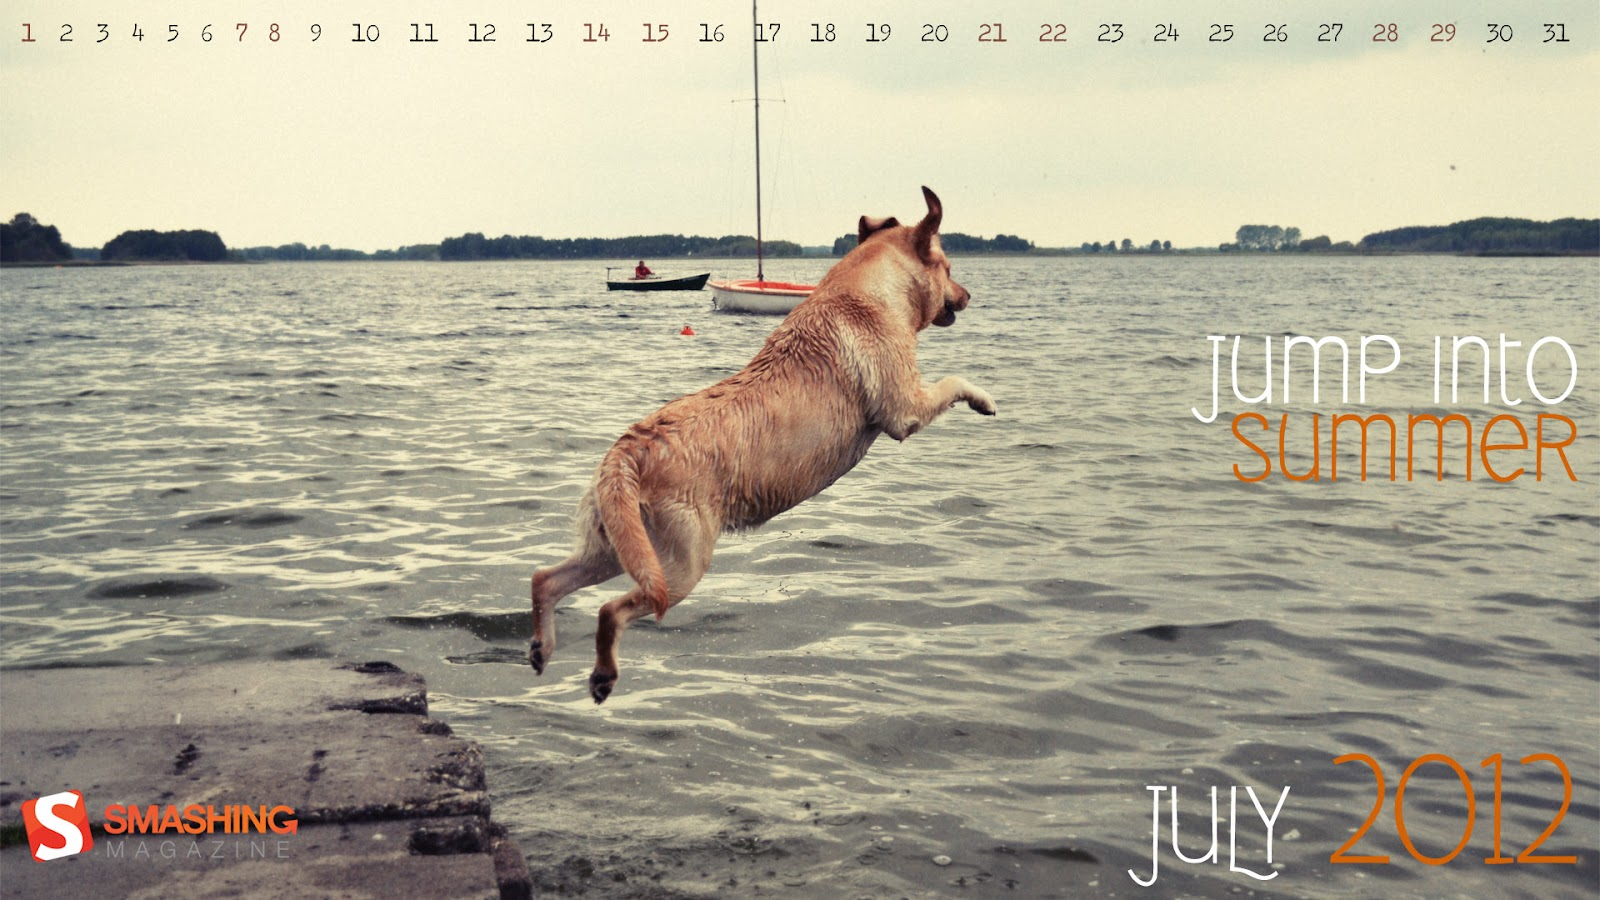 http://3.bp.blogspot.com/--KJsj4pC-ow/T_HE_mNL-DI/AAAAAAAACXw/8_PKUoqEyrs/s1600/Dog+Lovers+July+Desktop+Wallpaper+Smashing+Magazine.jpg